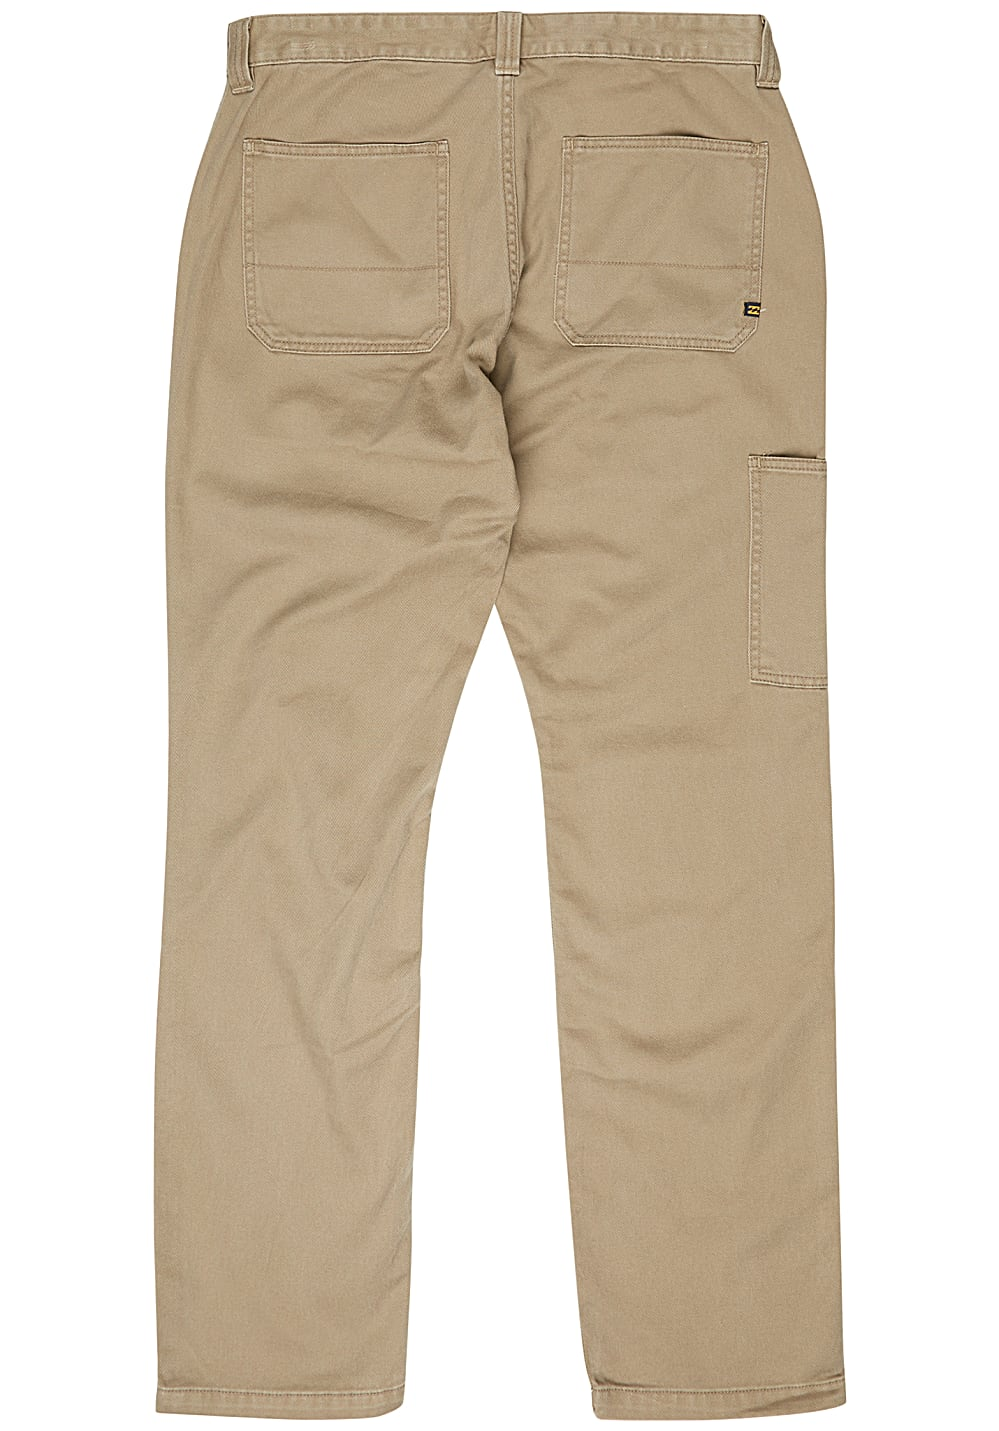 Beige Planet Collins Sports Billabong Pantalón Para Hombres q1X1wUI